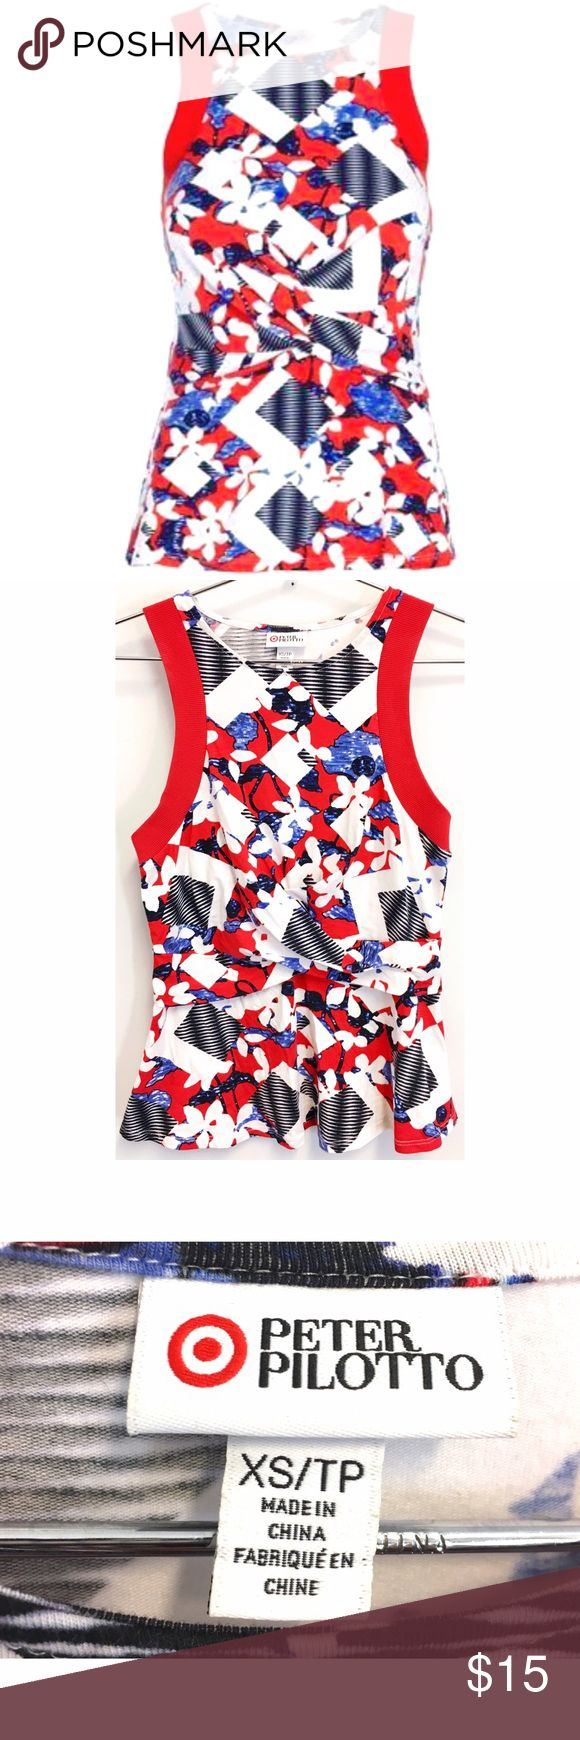 Peter Pilotto for Target Peplum Tank Peter Pilotto for Target red and white peplum tank. Super flattering and perfect for day or night! Peter Pilotto Tops Tank Tops